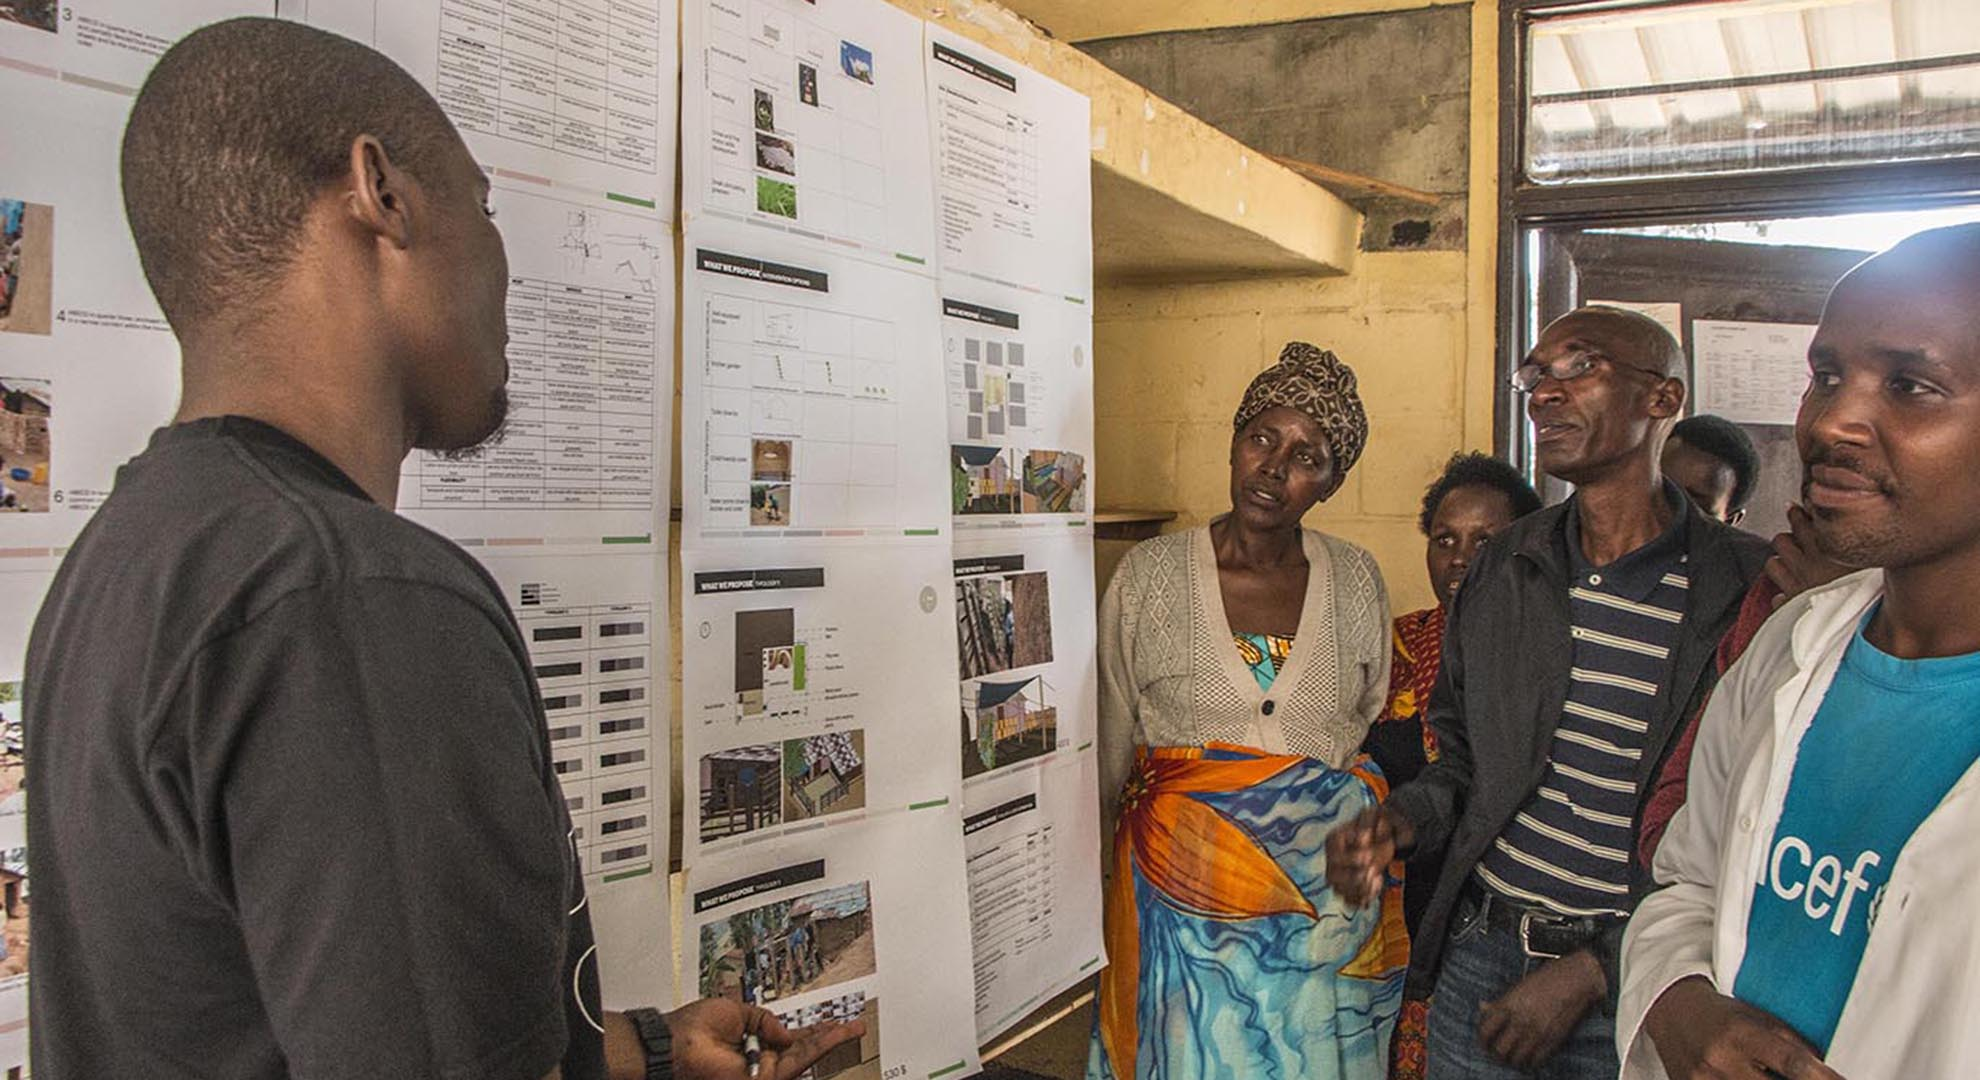 In line with the ever-growing complexity and interconnectedness of societal needs, there are design projects that seek positive social impact in East Africa.